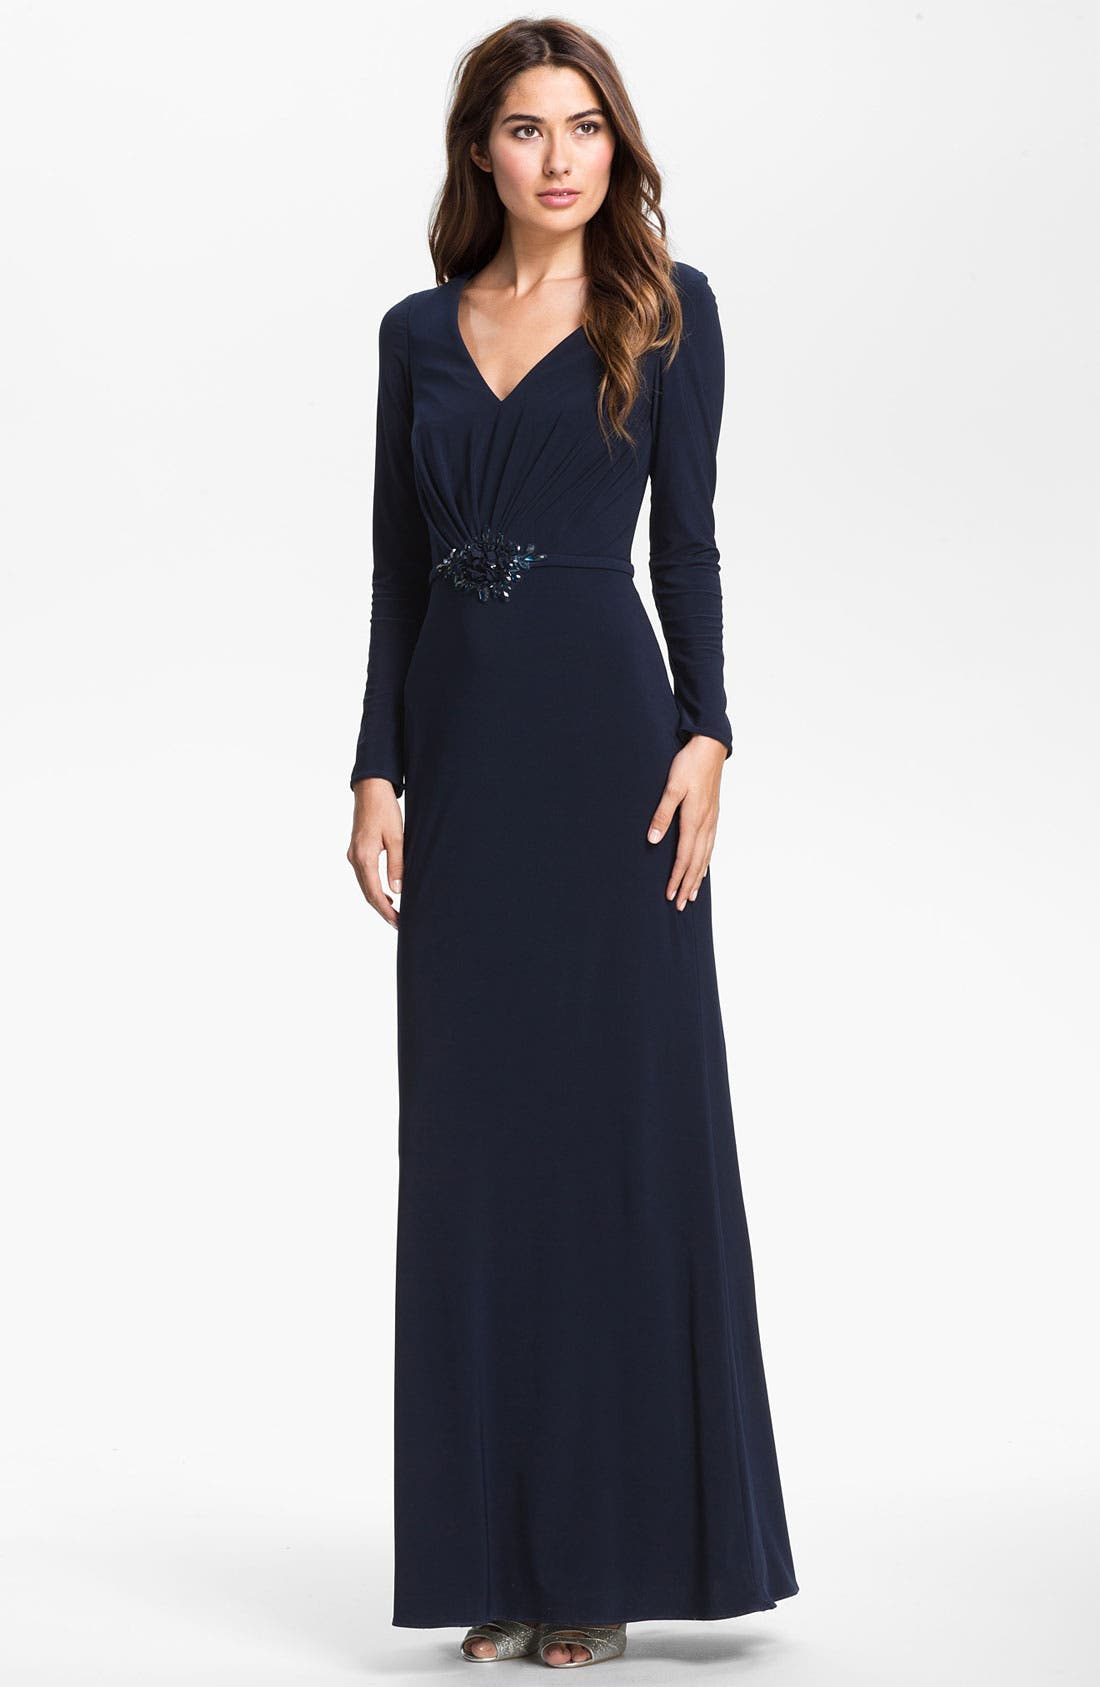 Alternate Image 1 Selected - Kathy Hilton Embellished Long Sleeve Jersey Gown